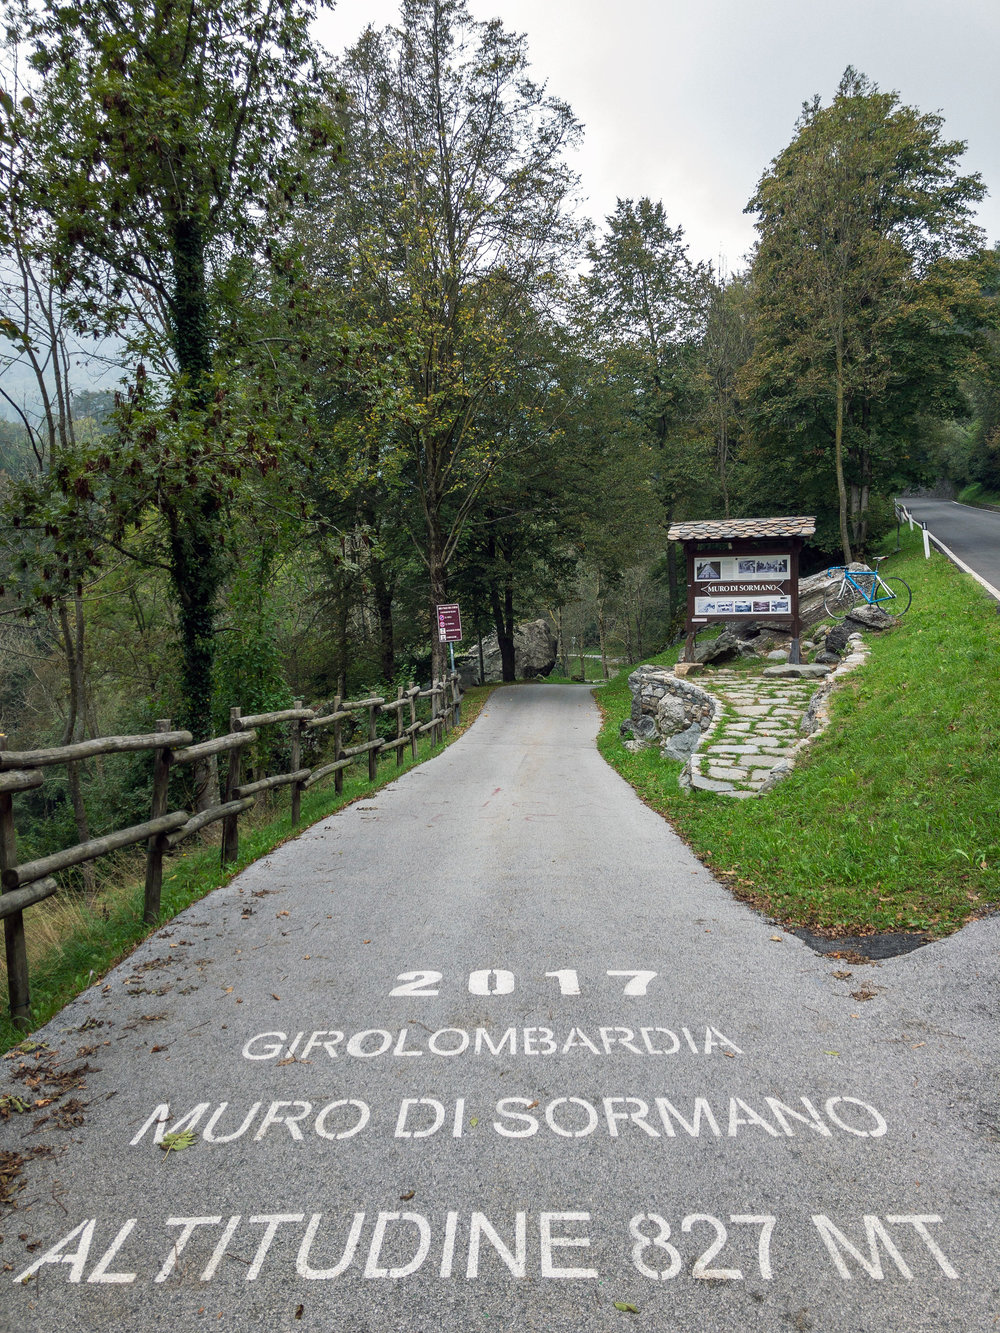 Muro Di Sormano climb     iPhone X 1/160s F1.8 ISO20